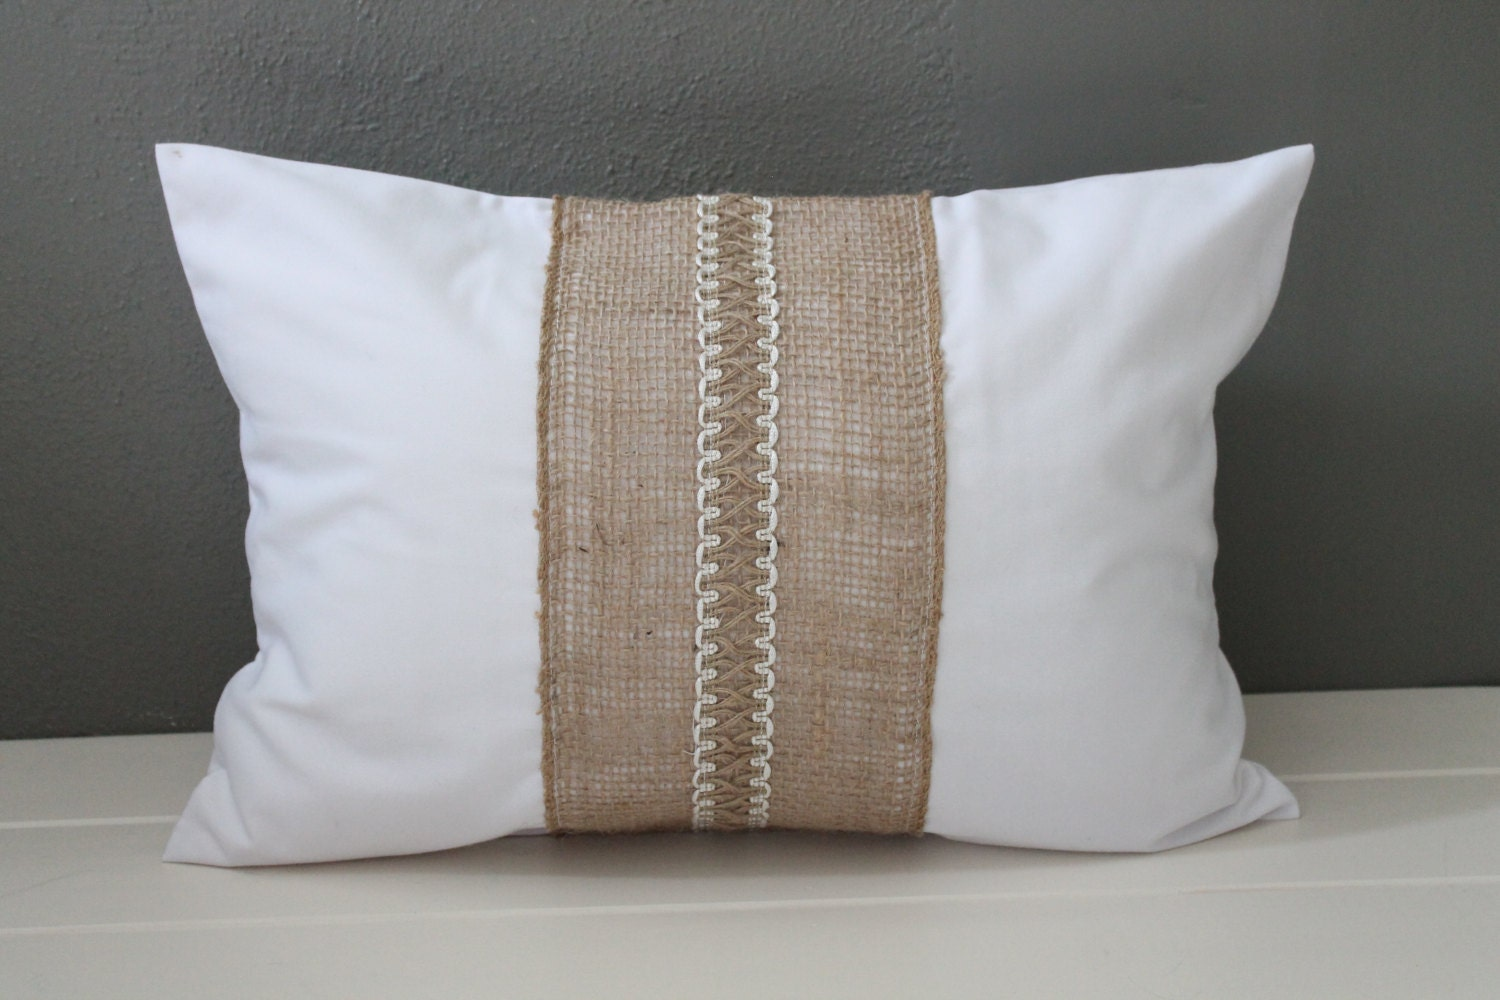 Modern Rustic Pillow: White Cotton and Jute by HabitatHandcrafted